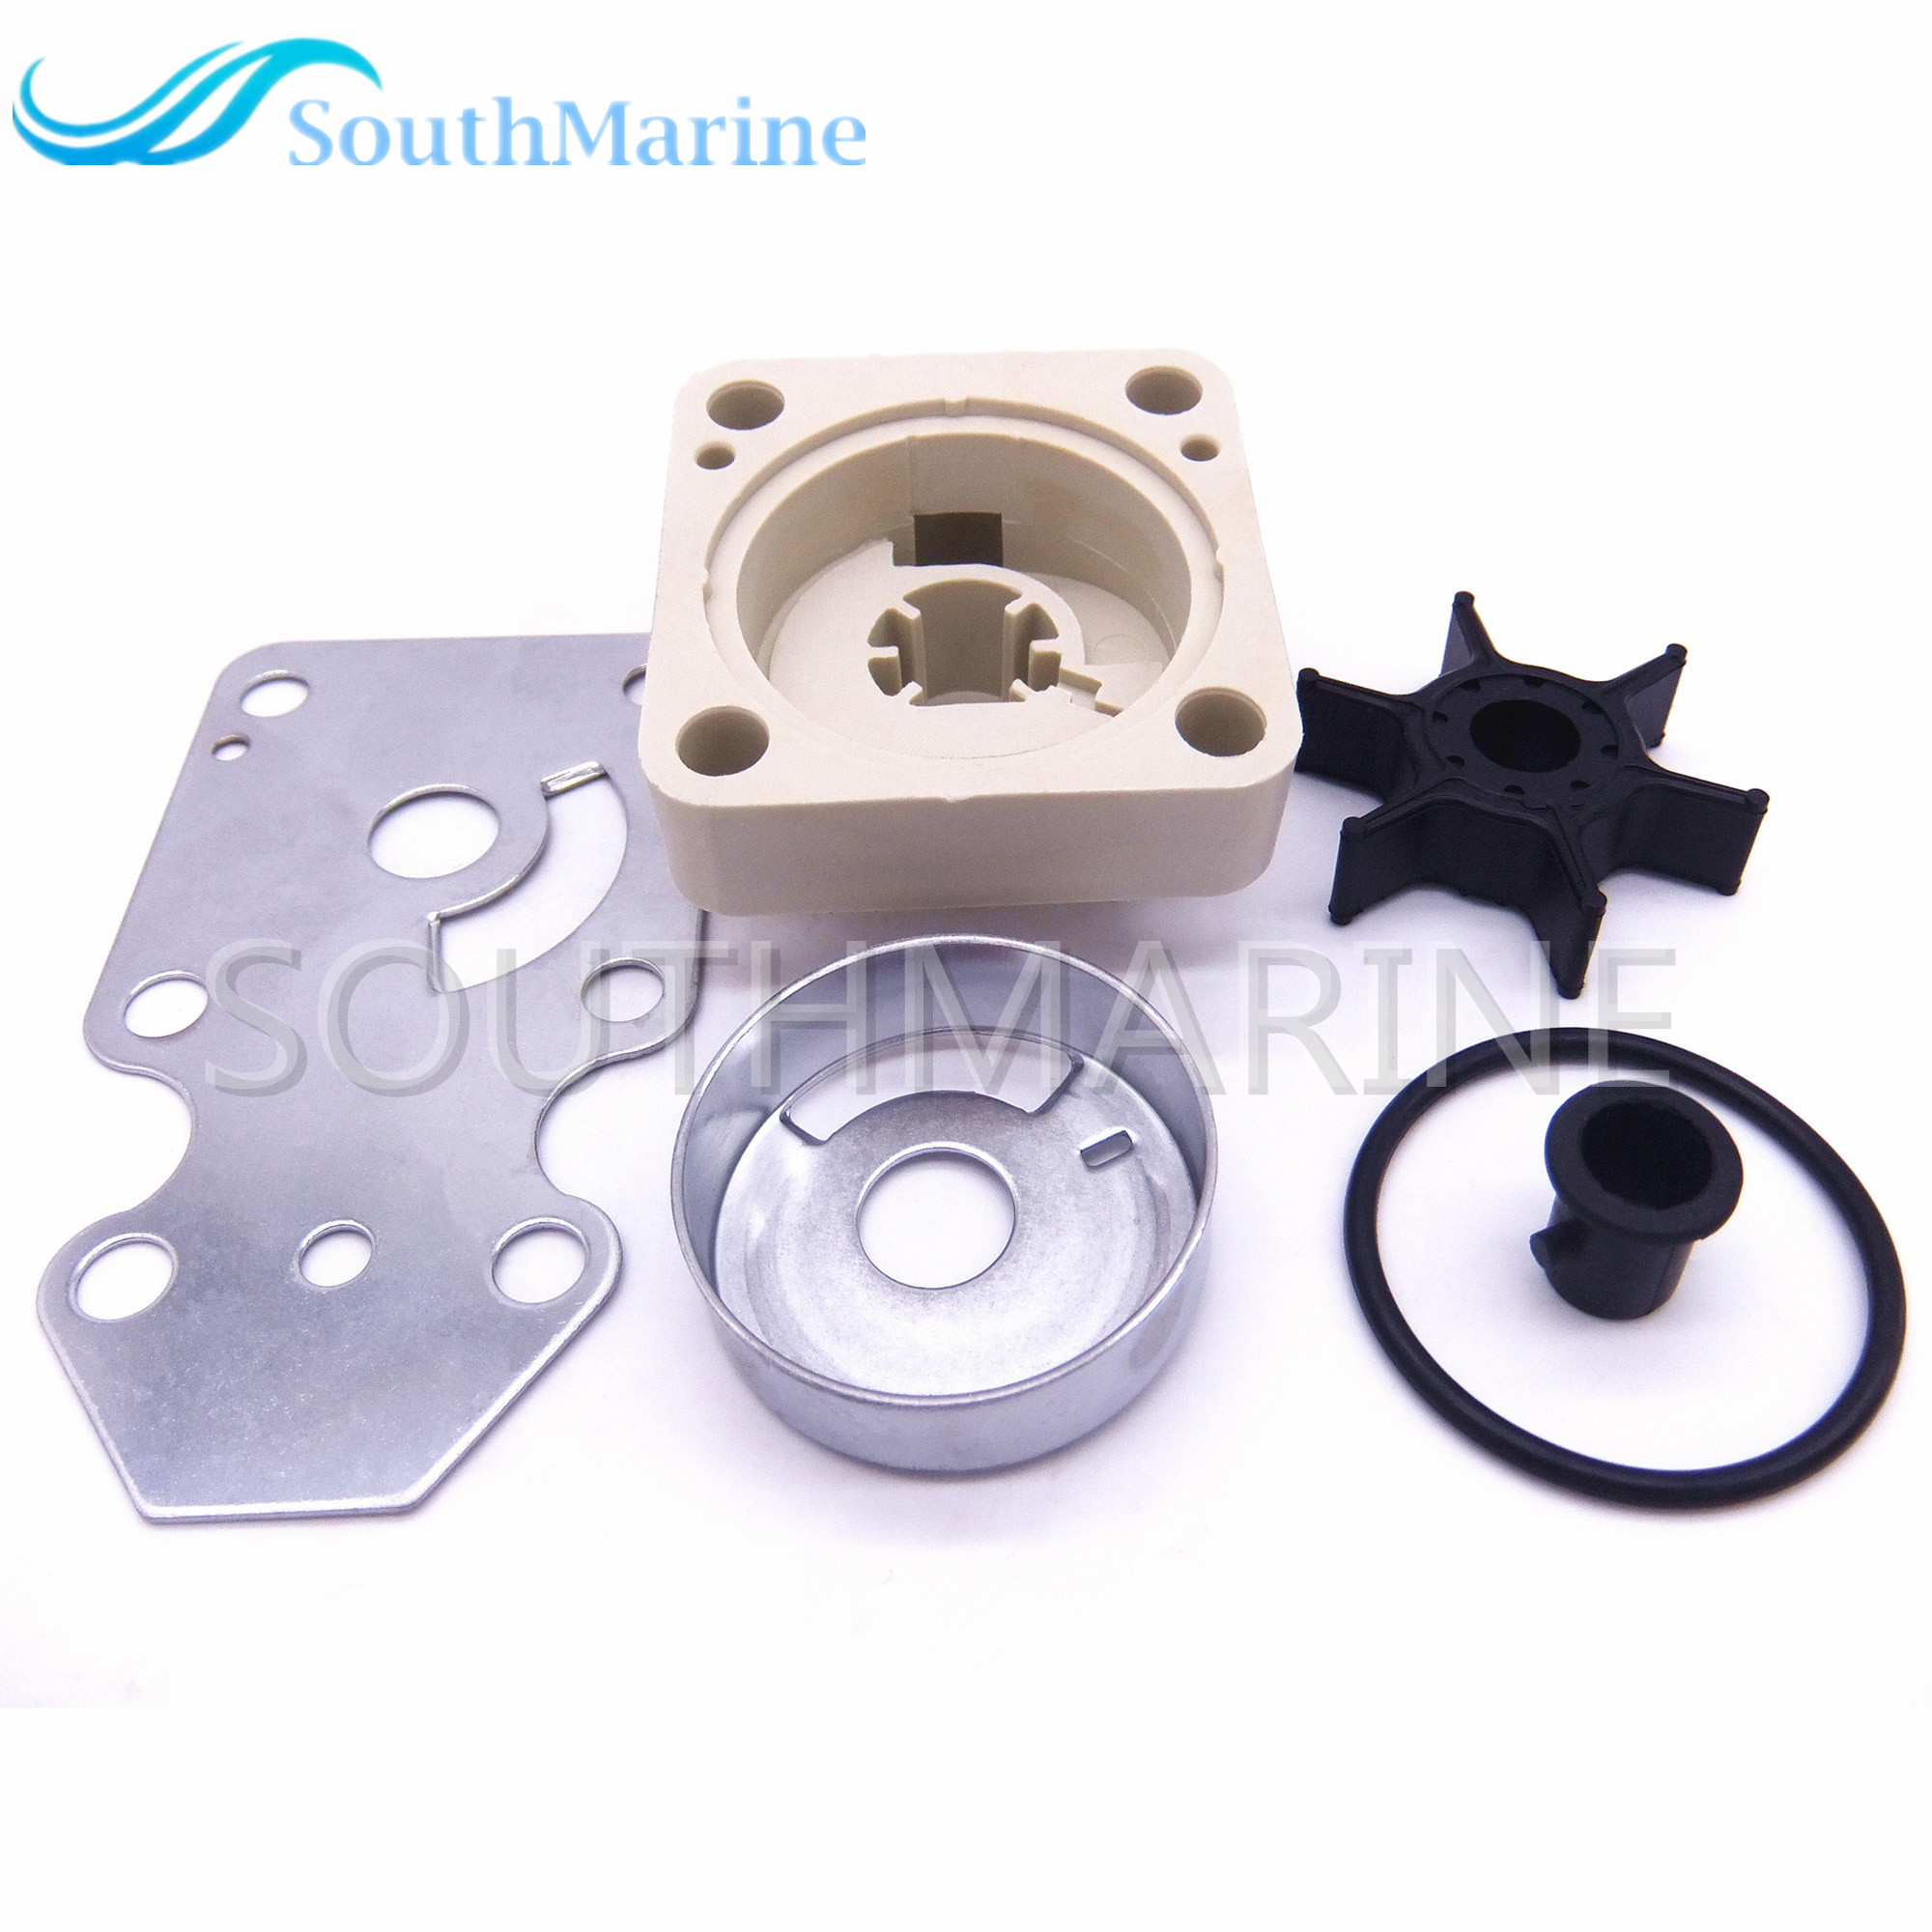 Water Pump Impeller 63V-W0078-00-00 Repair Kit for Yamaha F15 15hp 4-stroke Boat MotorsWater Pump Impeller 63V-W0078-00-00 Repair Kit for Yamaha F15 15hp 4-stroke Boat Motors